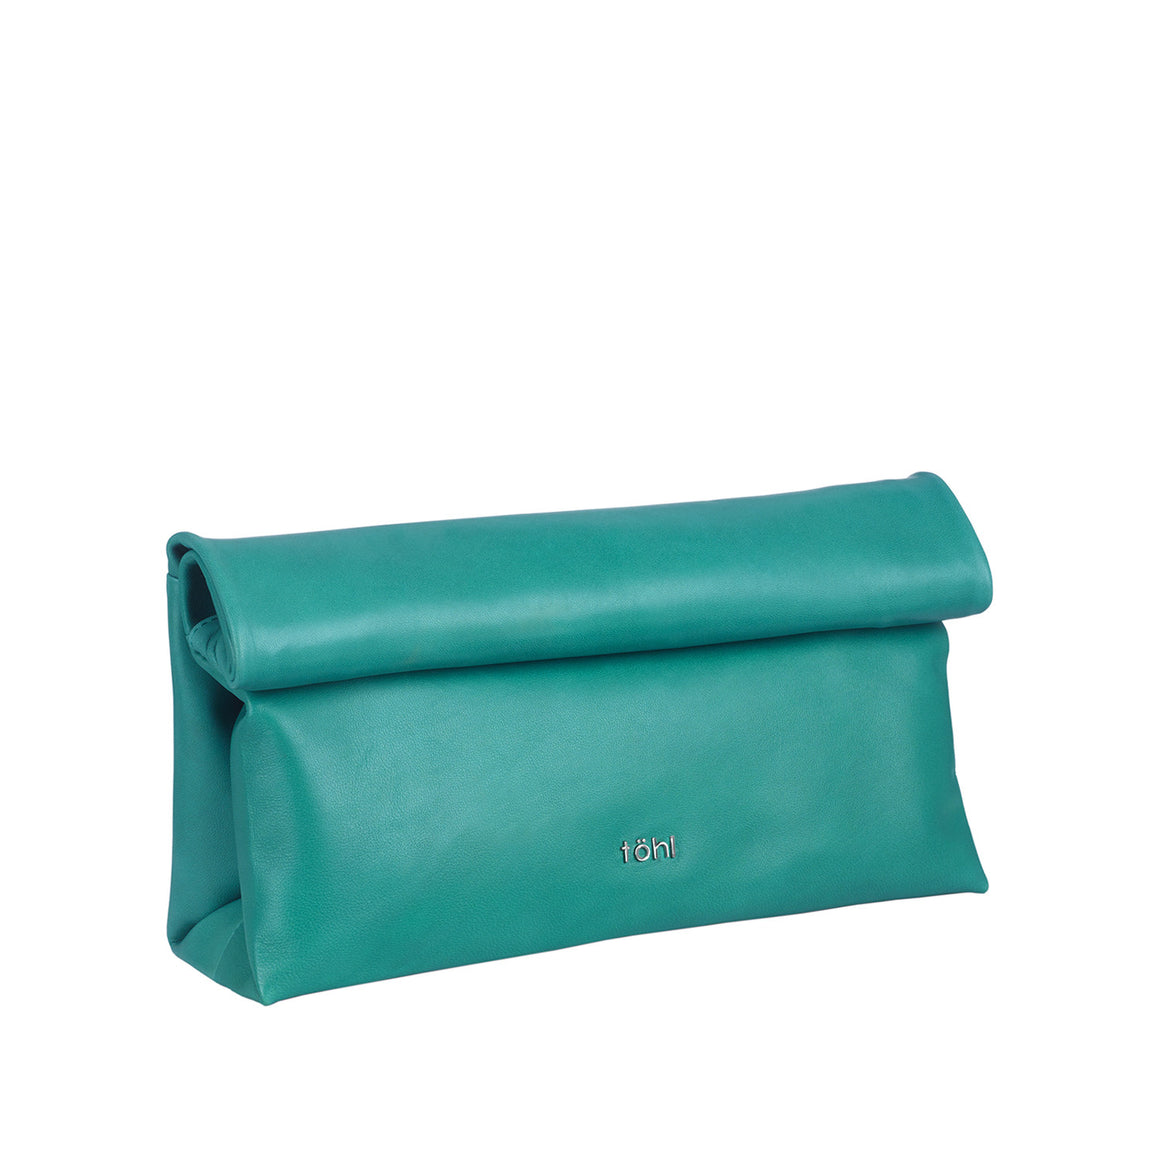 CH 0002 - TOHL FINI WOMEN'S GRIP CLUTCH - TURKIS